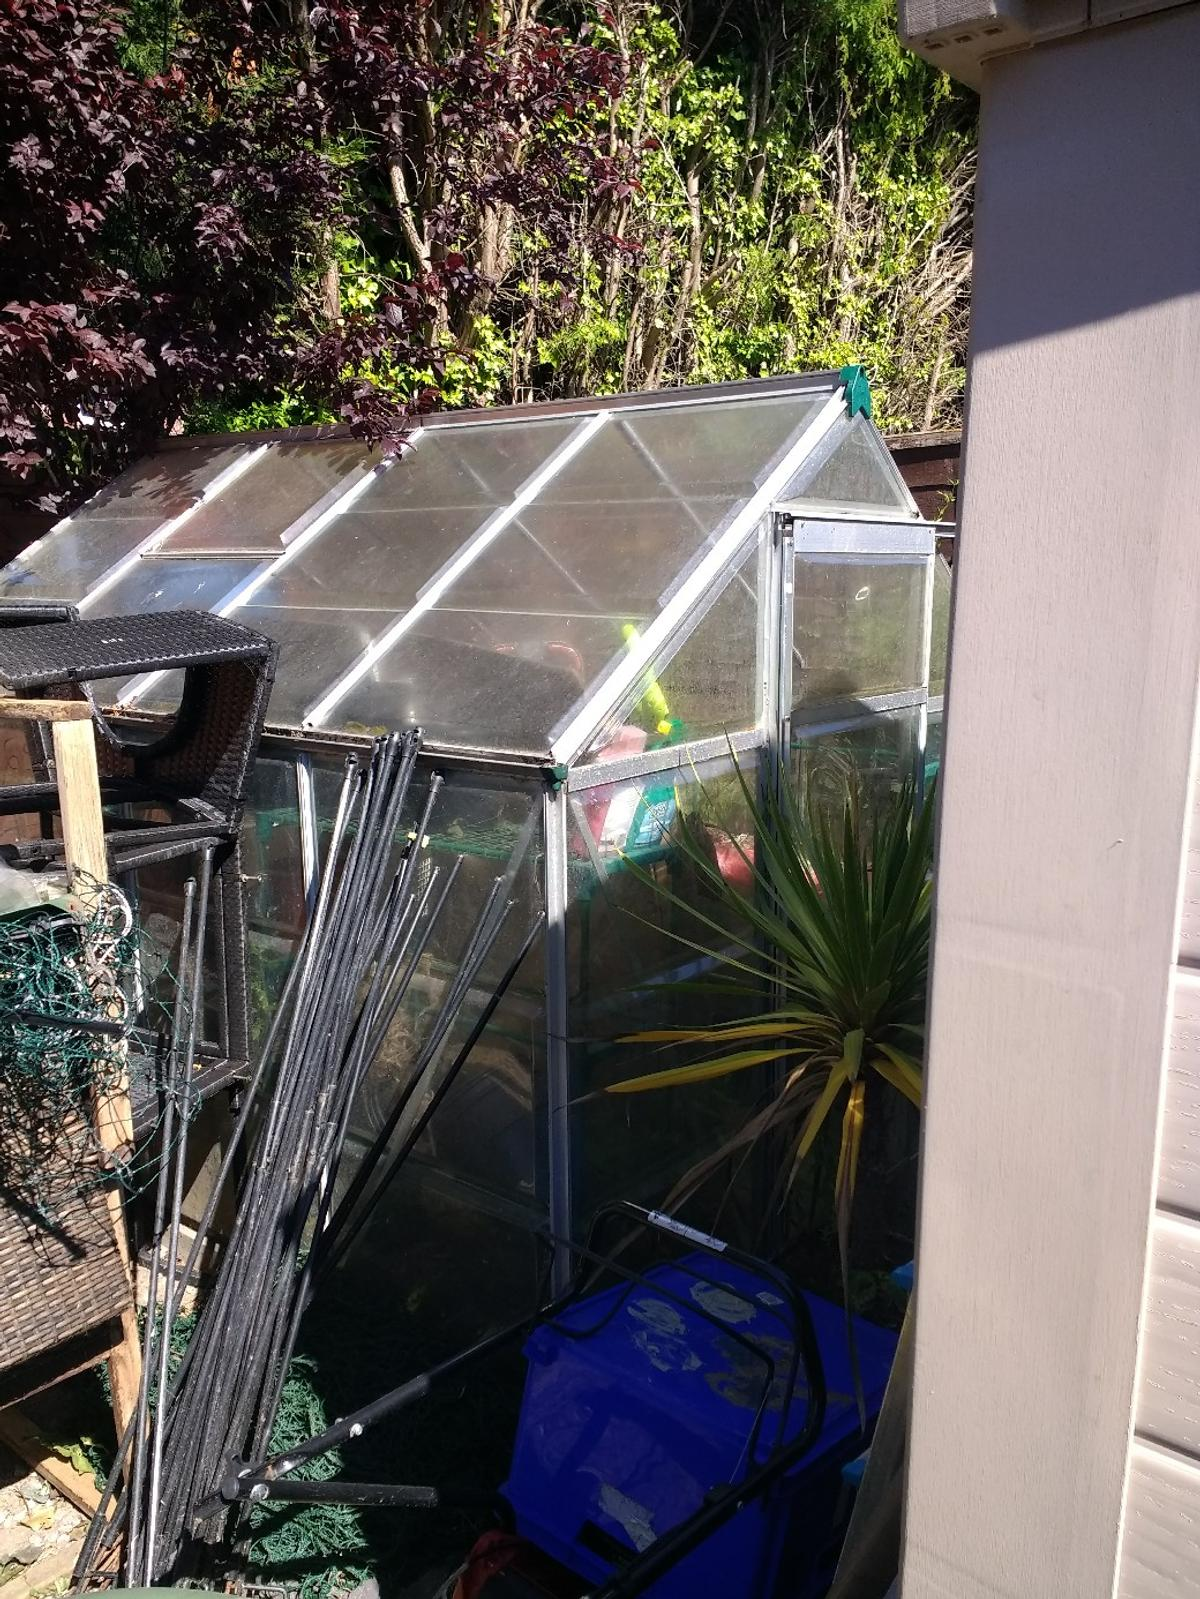 Palram 8x6 polycarbonate greenhouse in South Ribble for